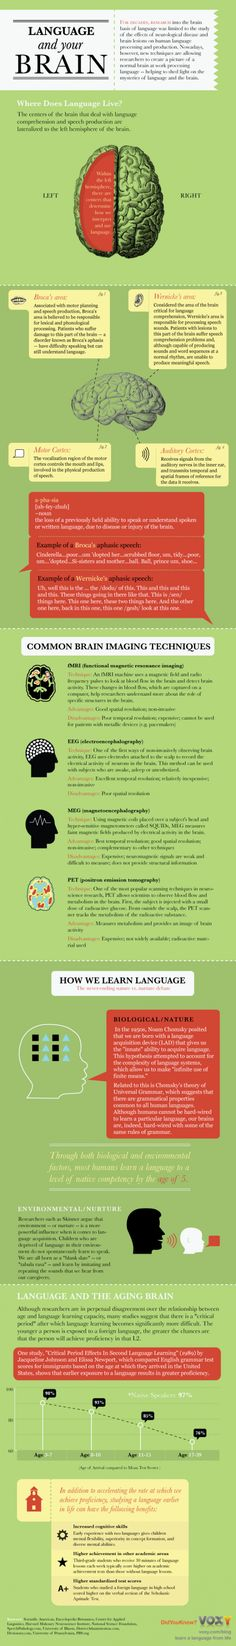 Is interested in learning a little about the brain and language learning - how we learn language, and the benefits it brings.